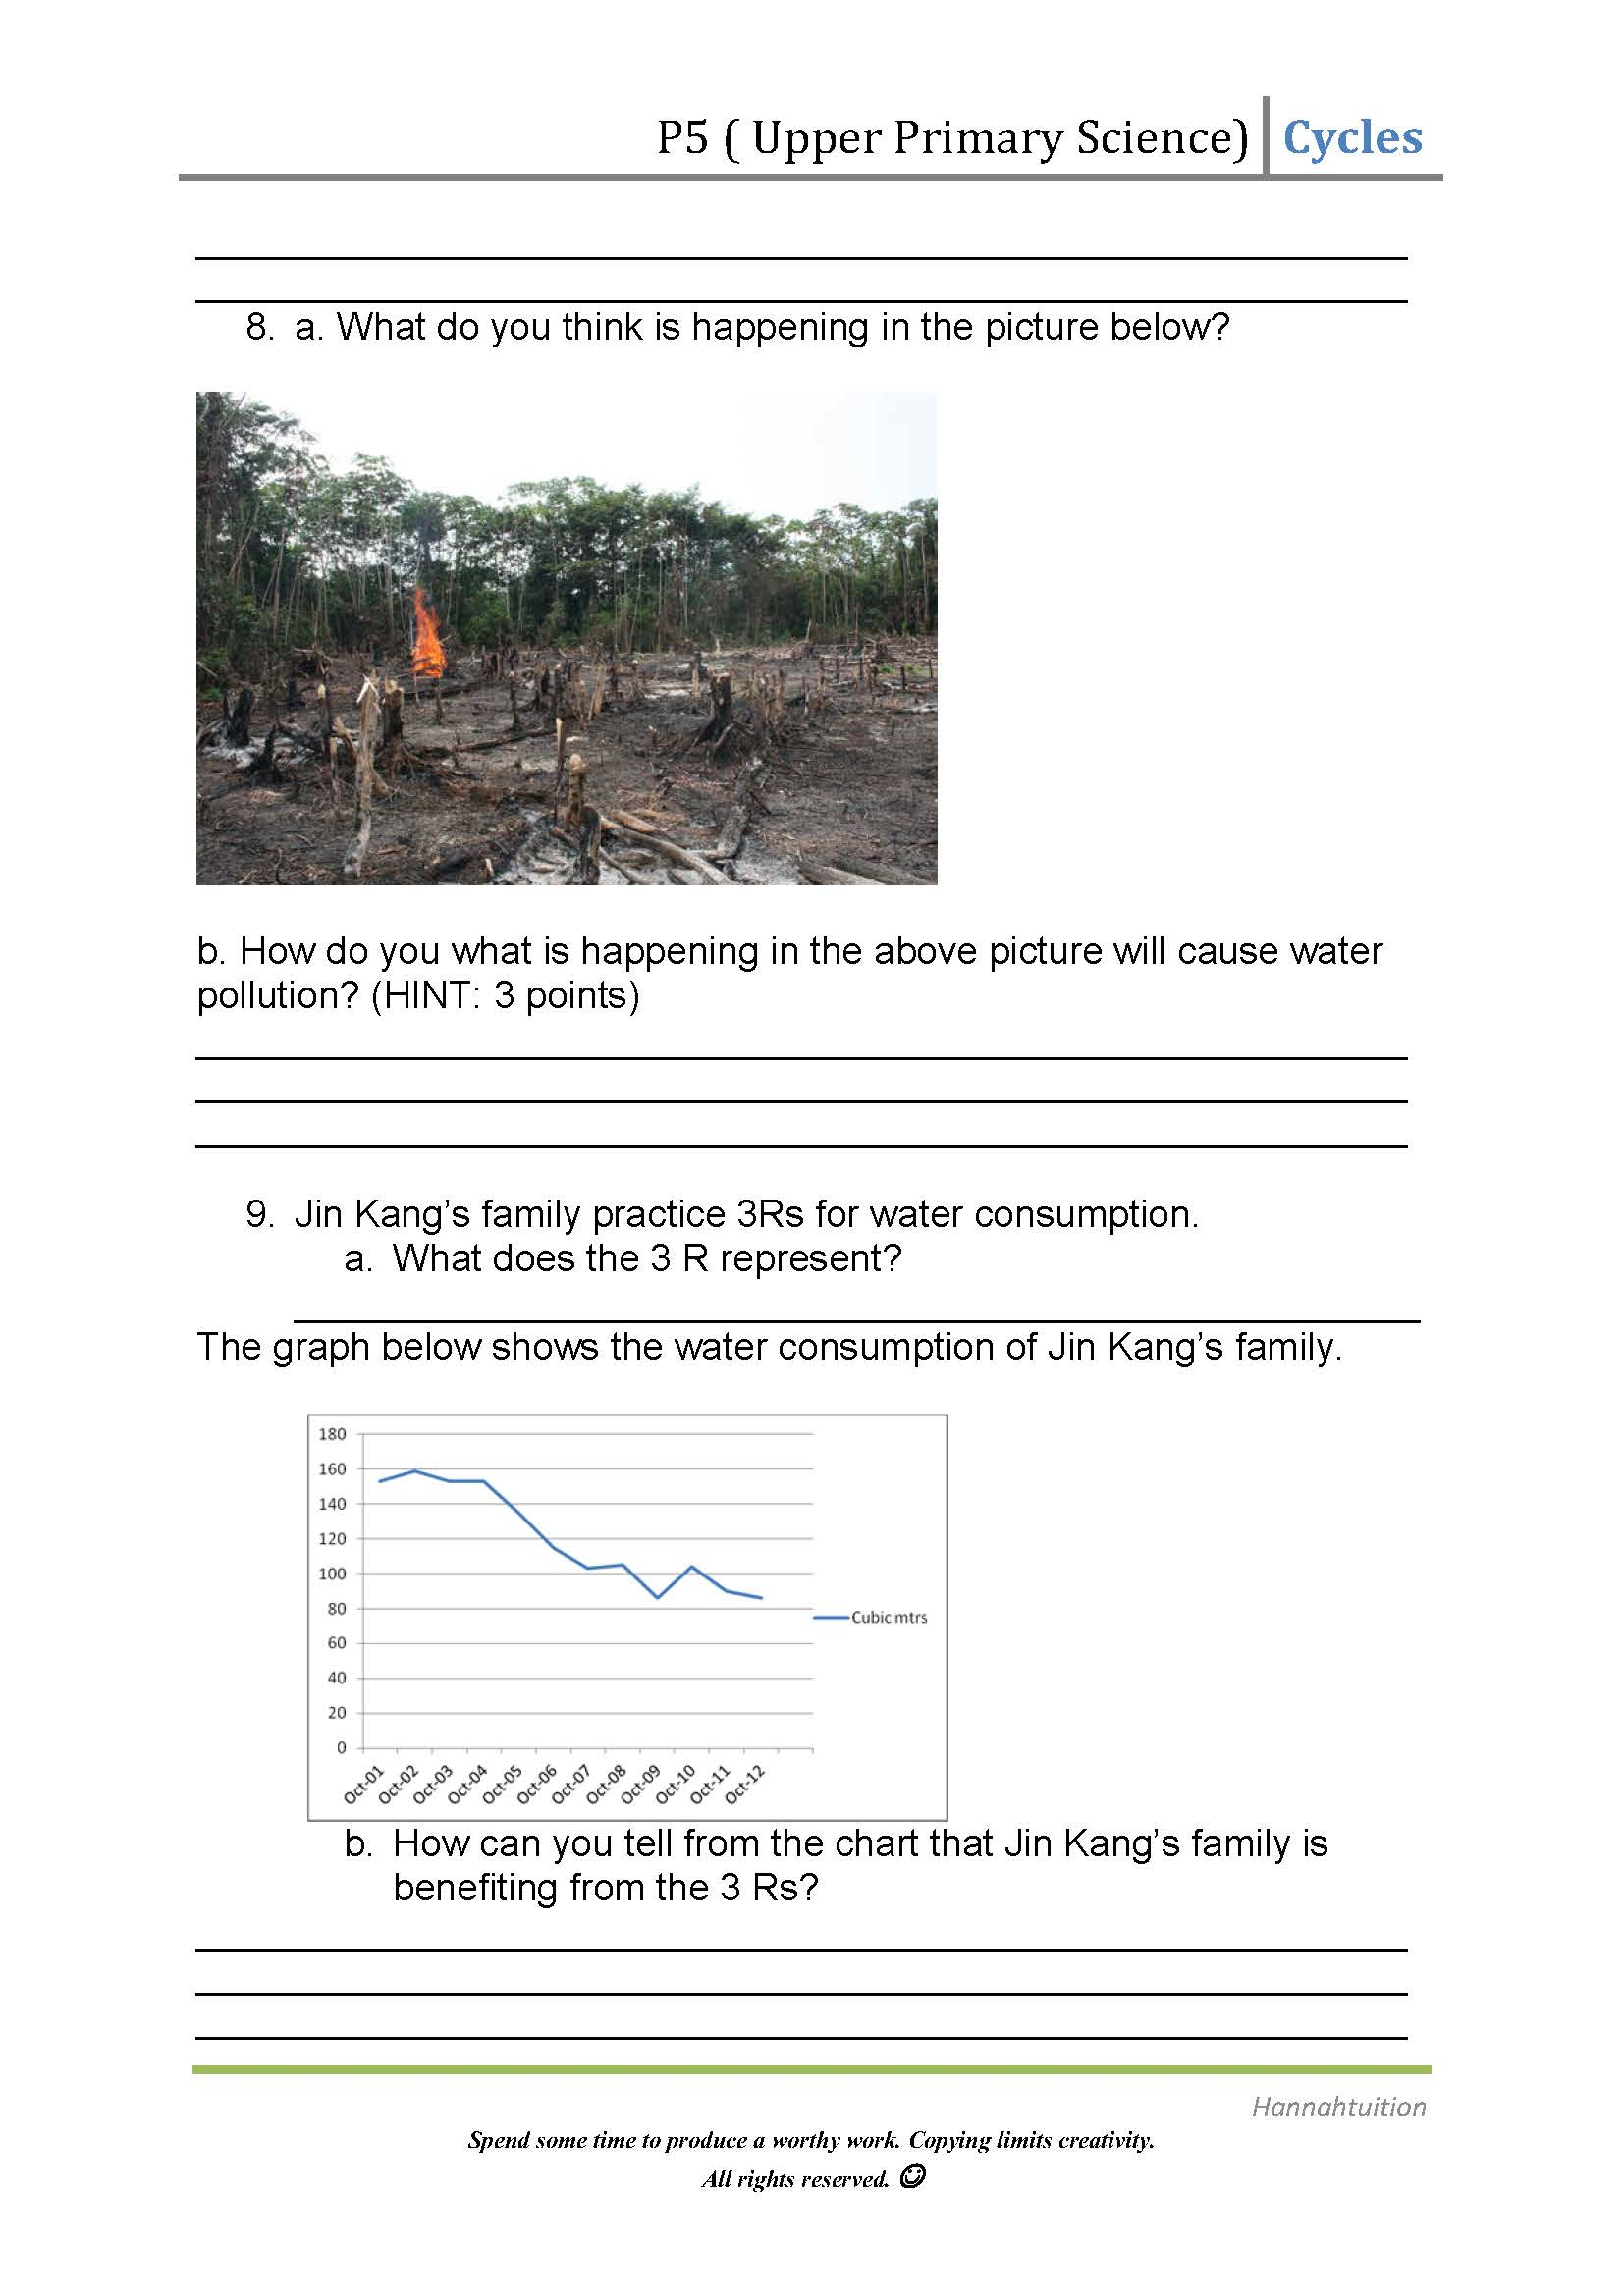 P5 Science Water Cycles Worksheet Hannahtuition